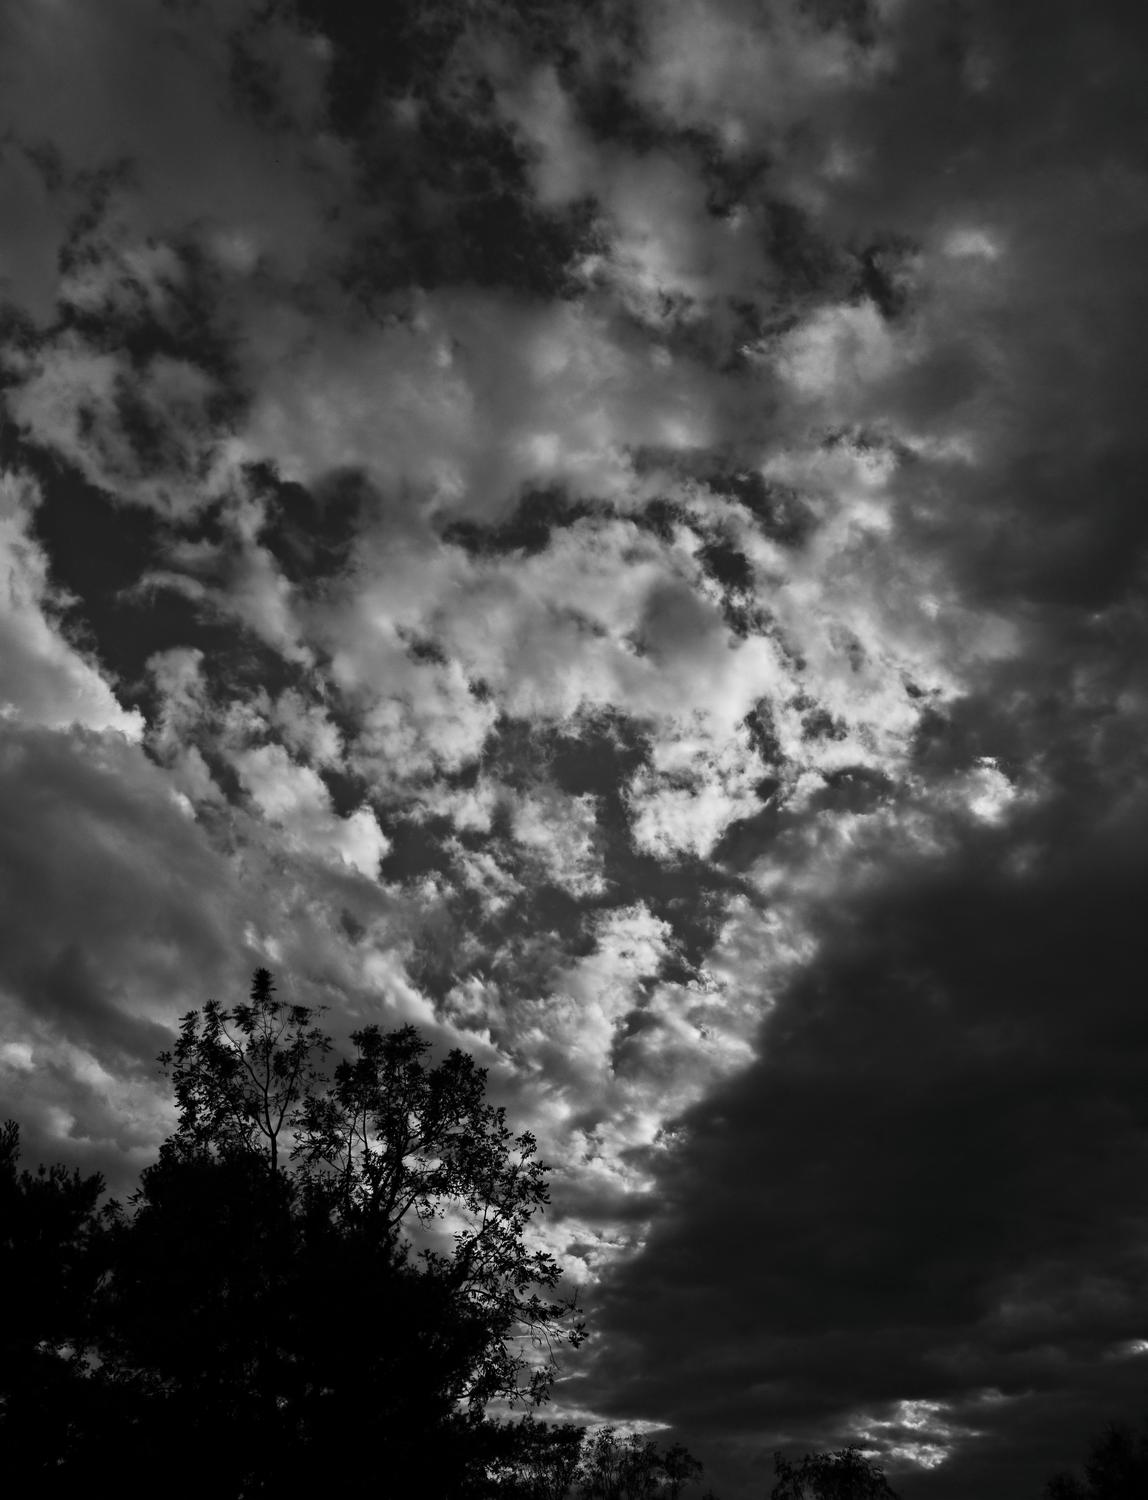 - Clouds at sunset in black and white - vertical panorama <br>--- Click to see ORIGINAL --- - Panasonic DMC-ZS20 - Tony Karp, design, art, photography, techno-impressionist, techno-impressionism, aerial photography , drone , drones , dji , mavic pro , video , 3D printing - Books -